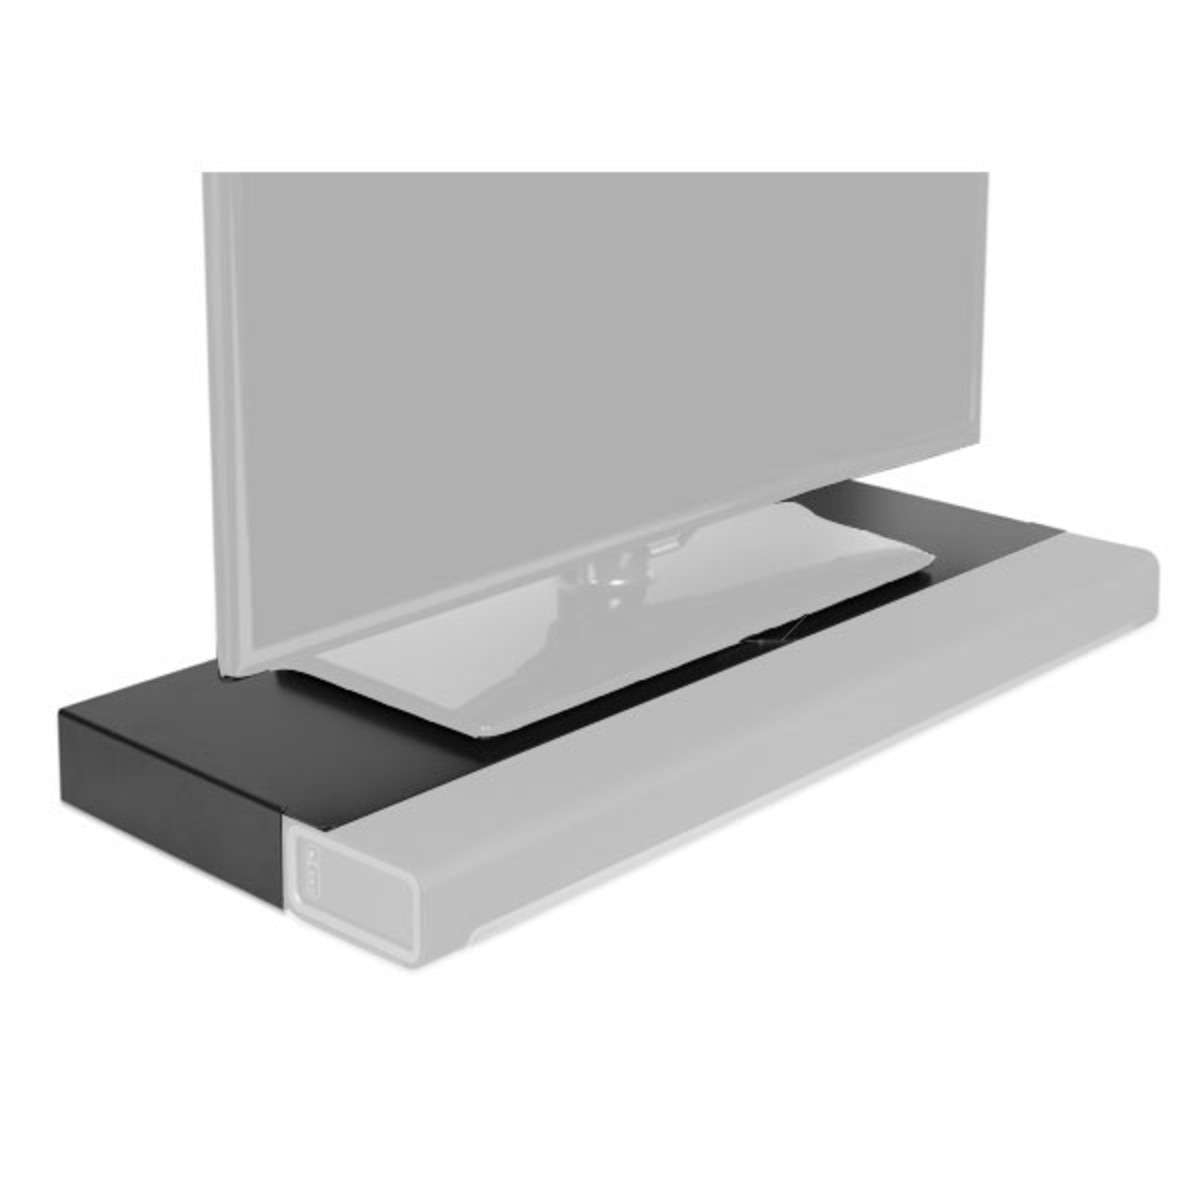 Flexson Tv Stand For Sonos Playbar, Black At Gear4Music Regarding Sonos Tv Stands (View 9 of 15)